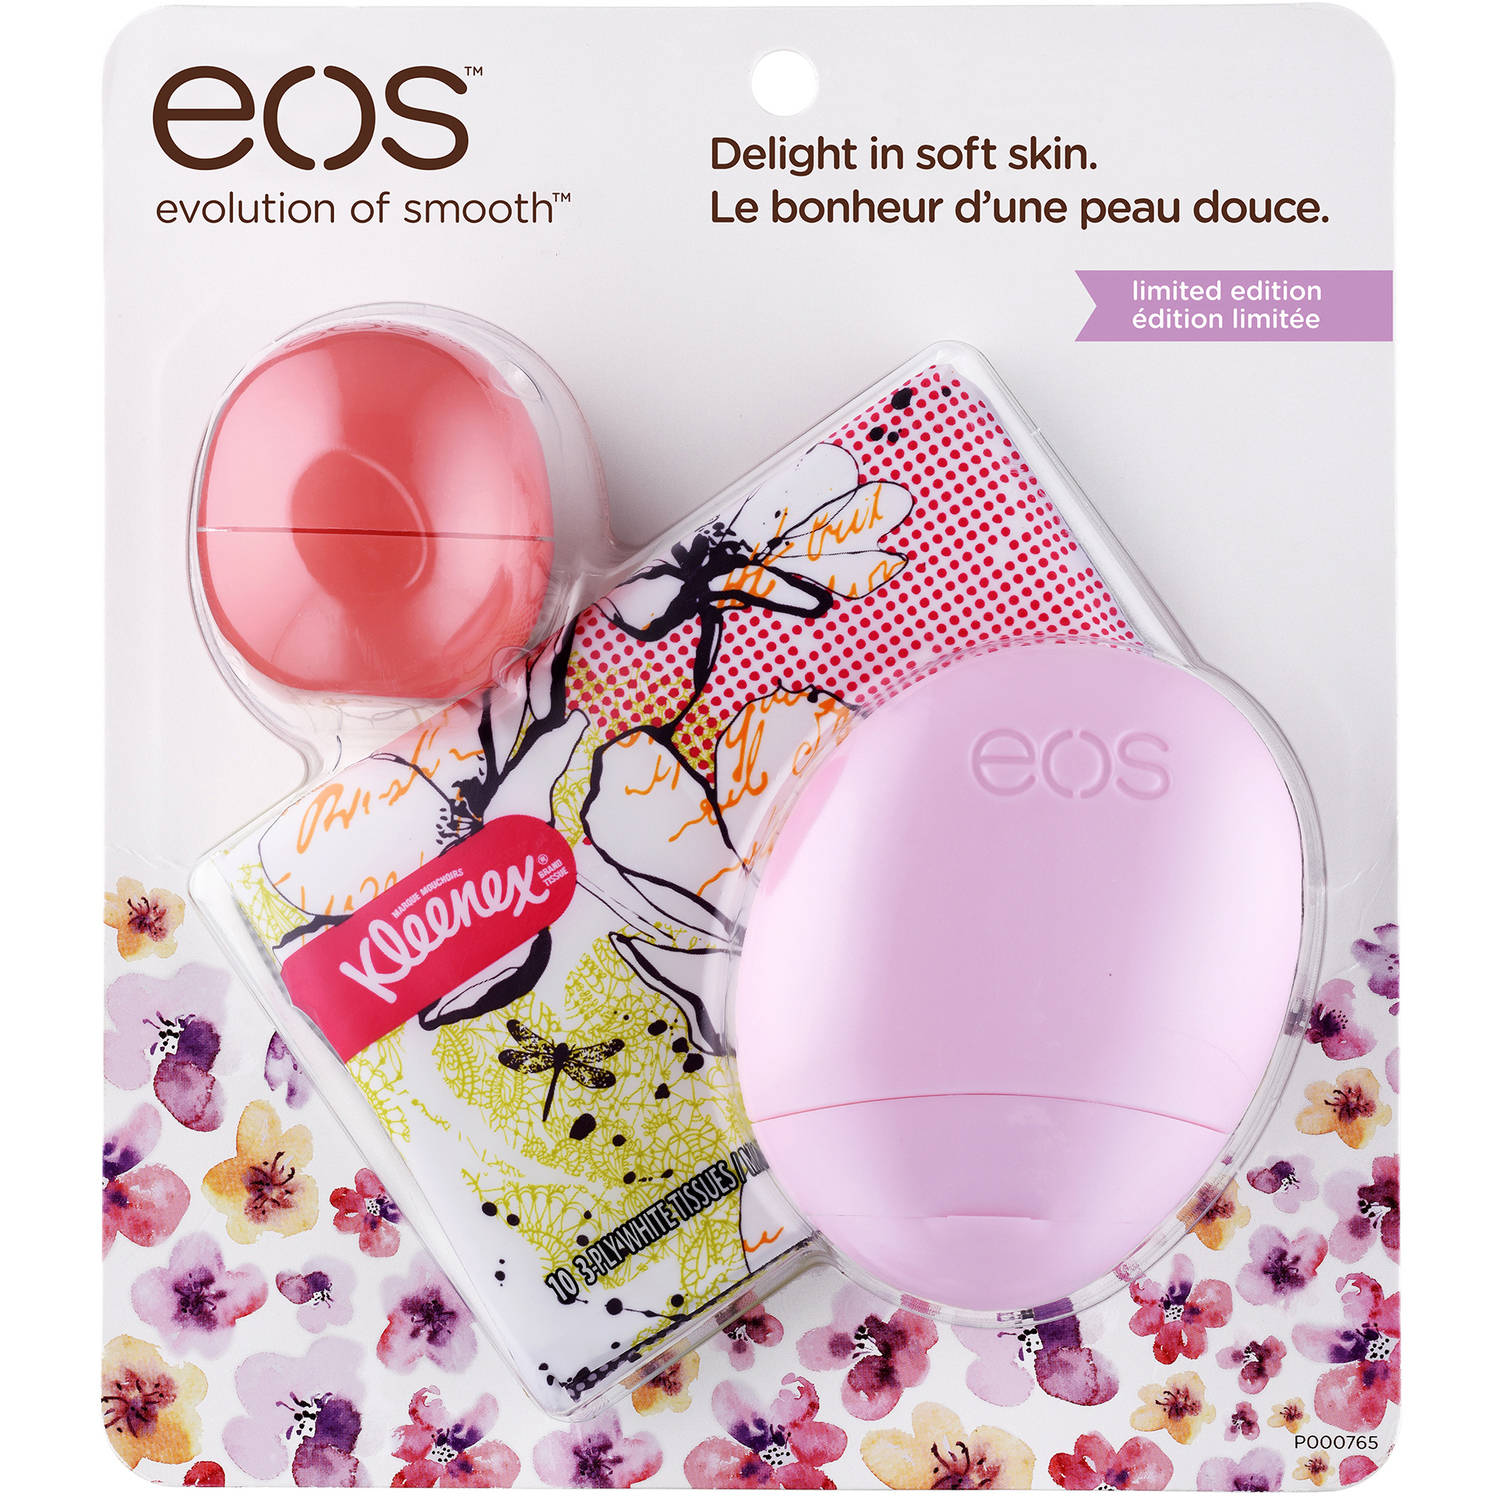 eos Spring Pack Gift Set, 3 pc